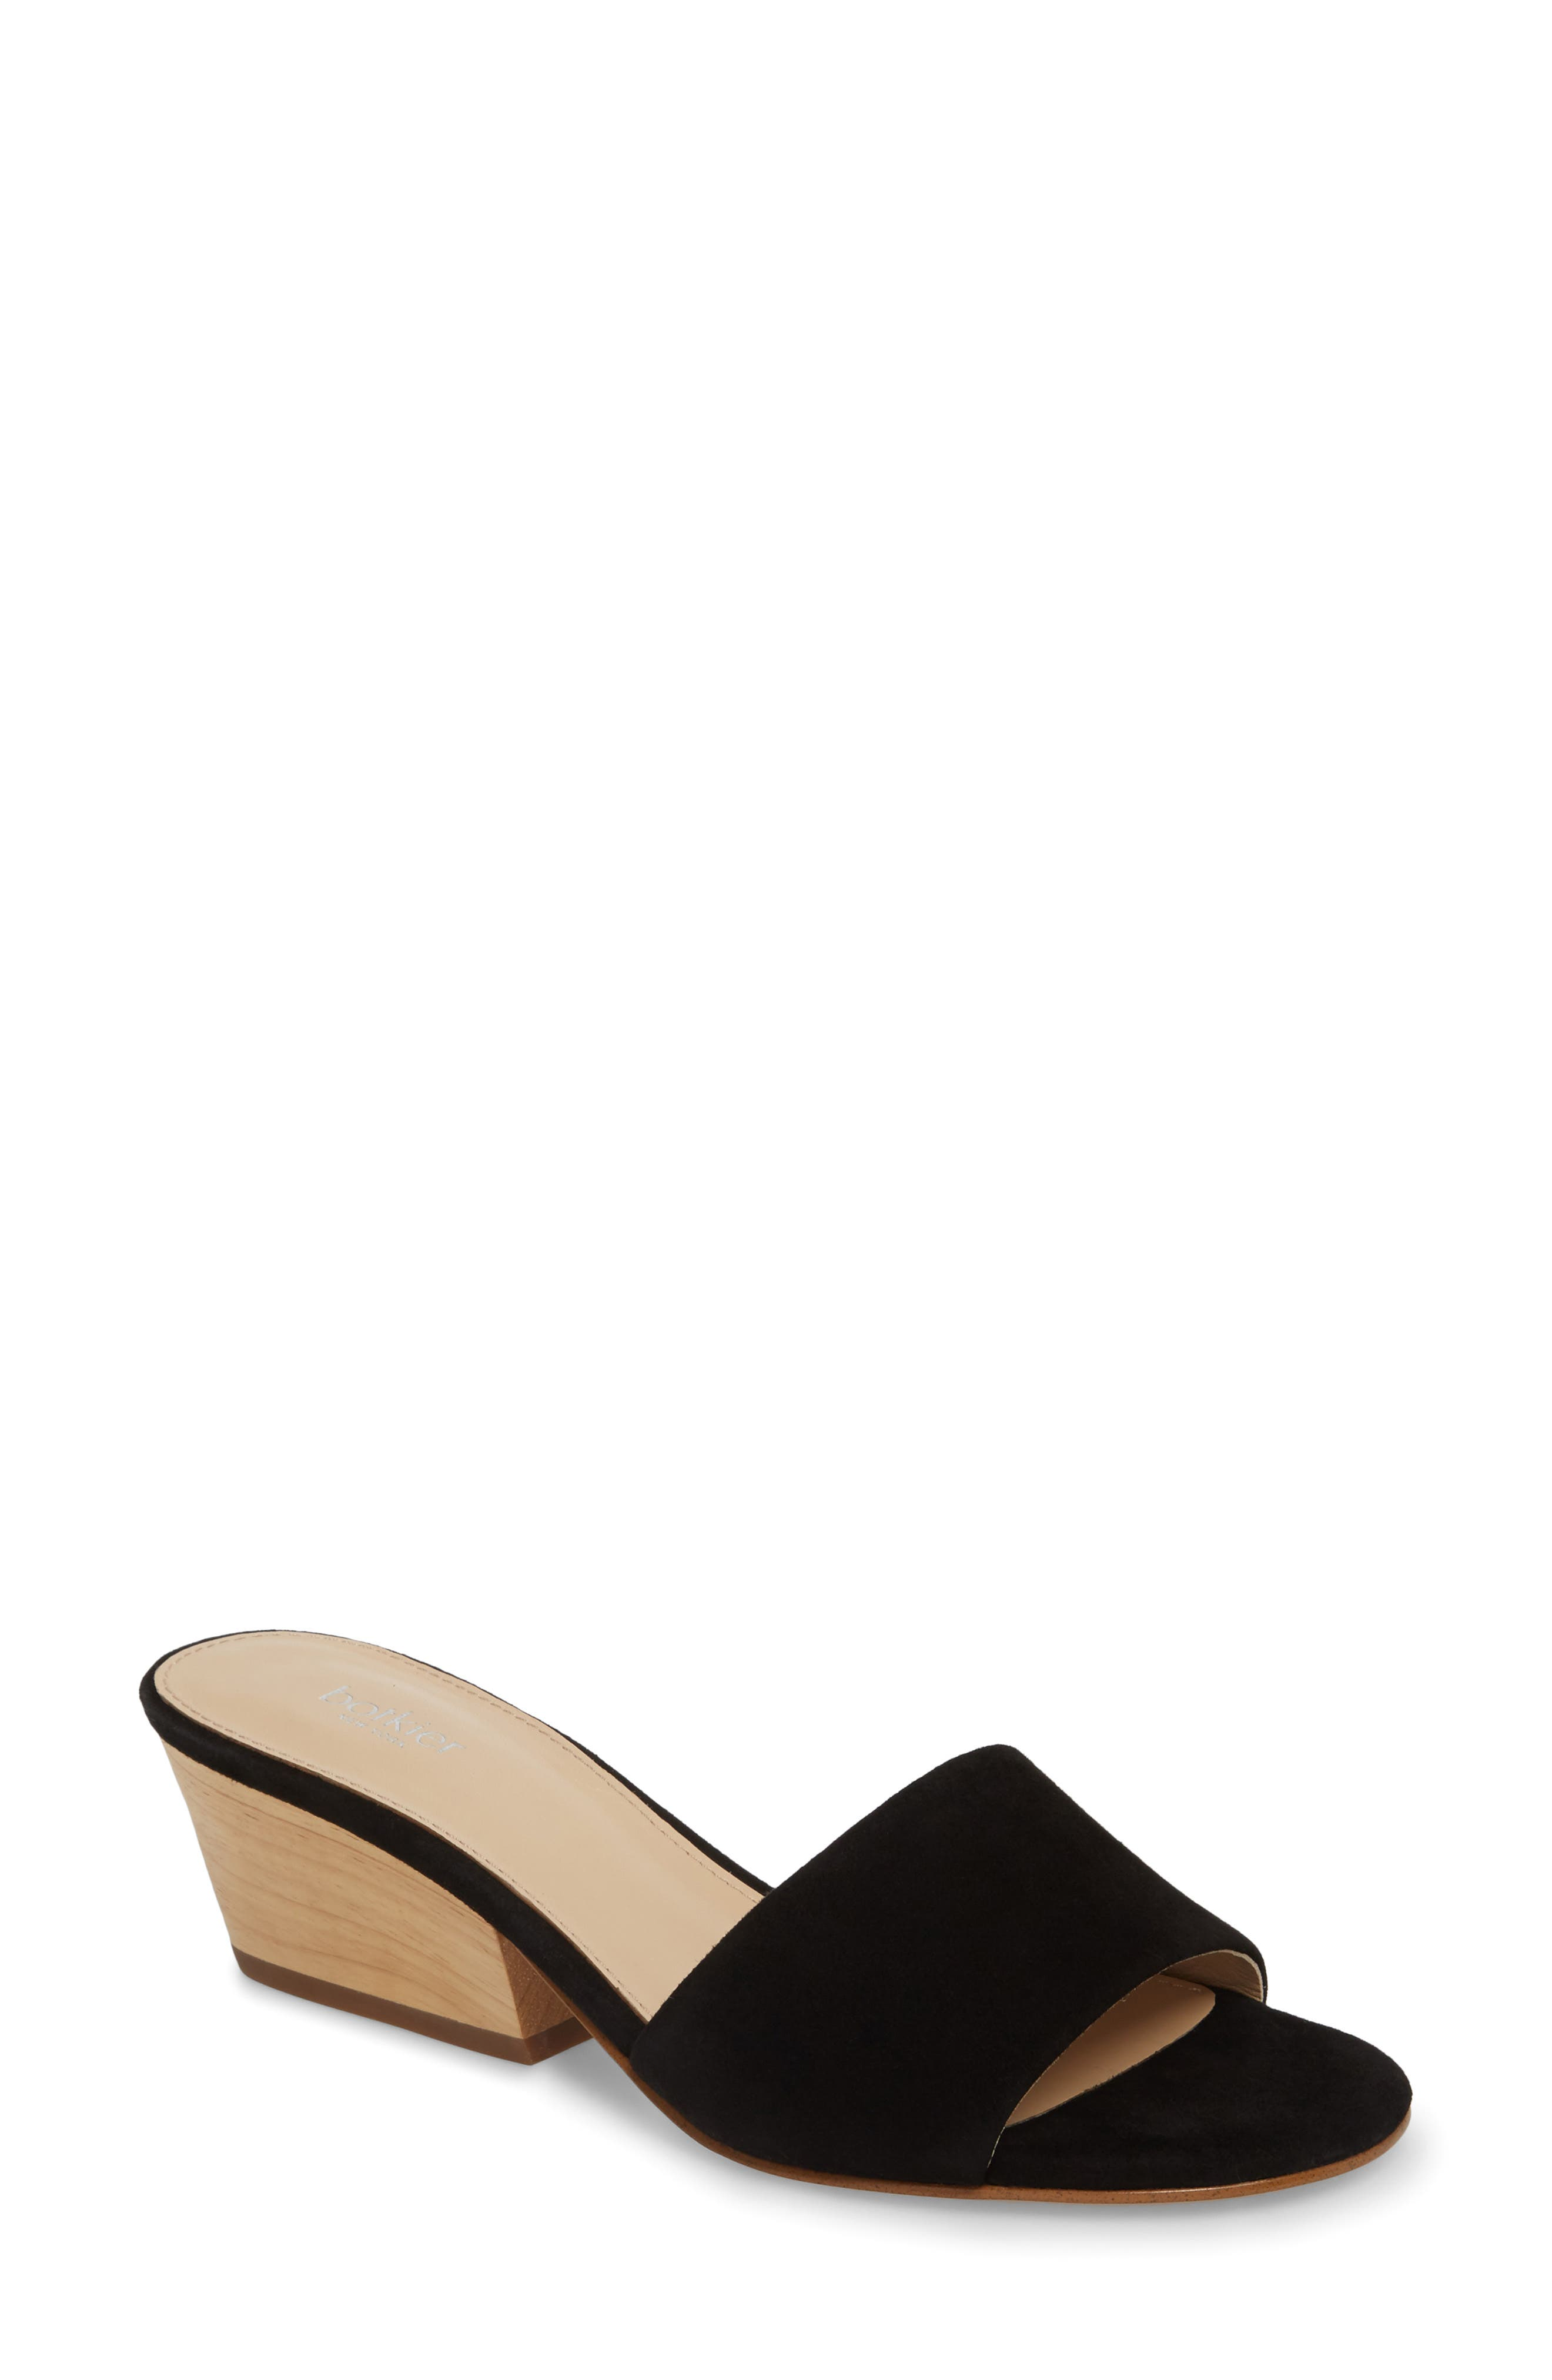 Carlie Mule,                         Main,                         color, BLACK SUEDE